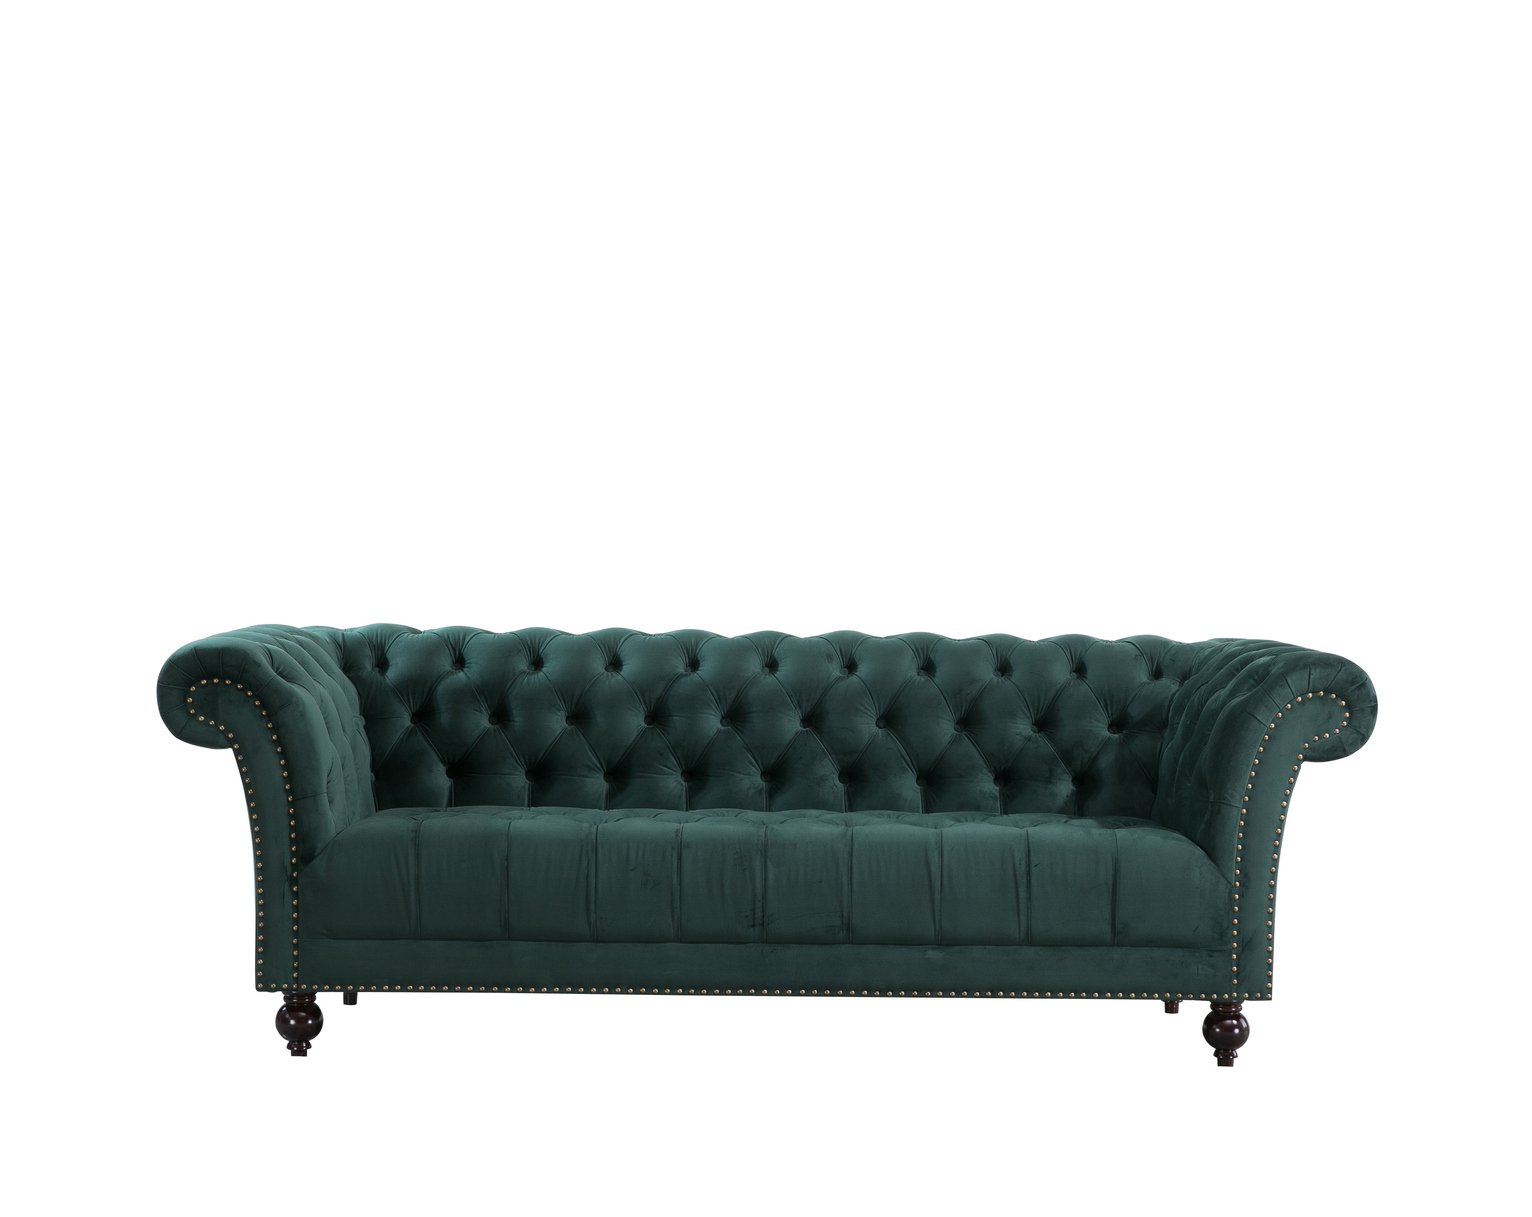 Birlea Chester 3 Seater Fabric Sofa - Green